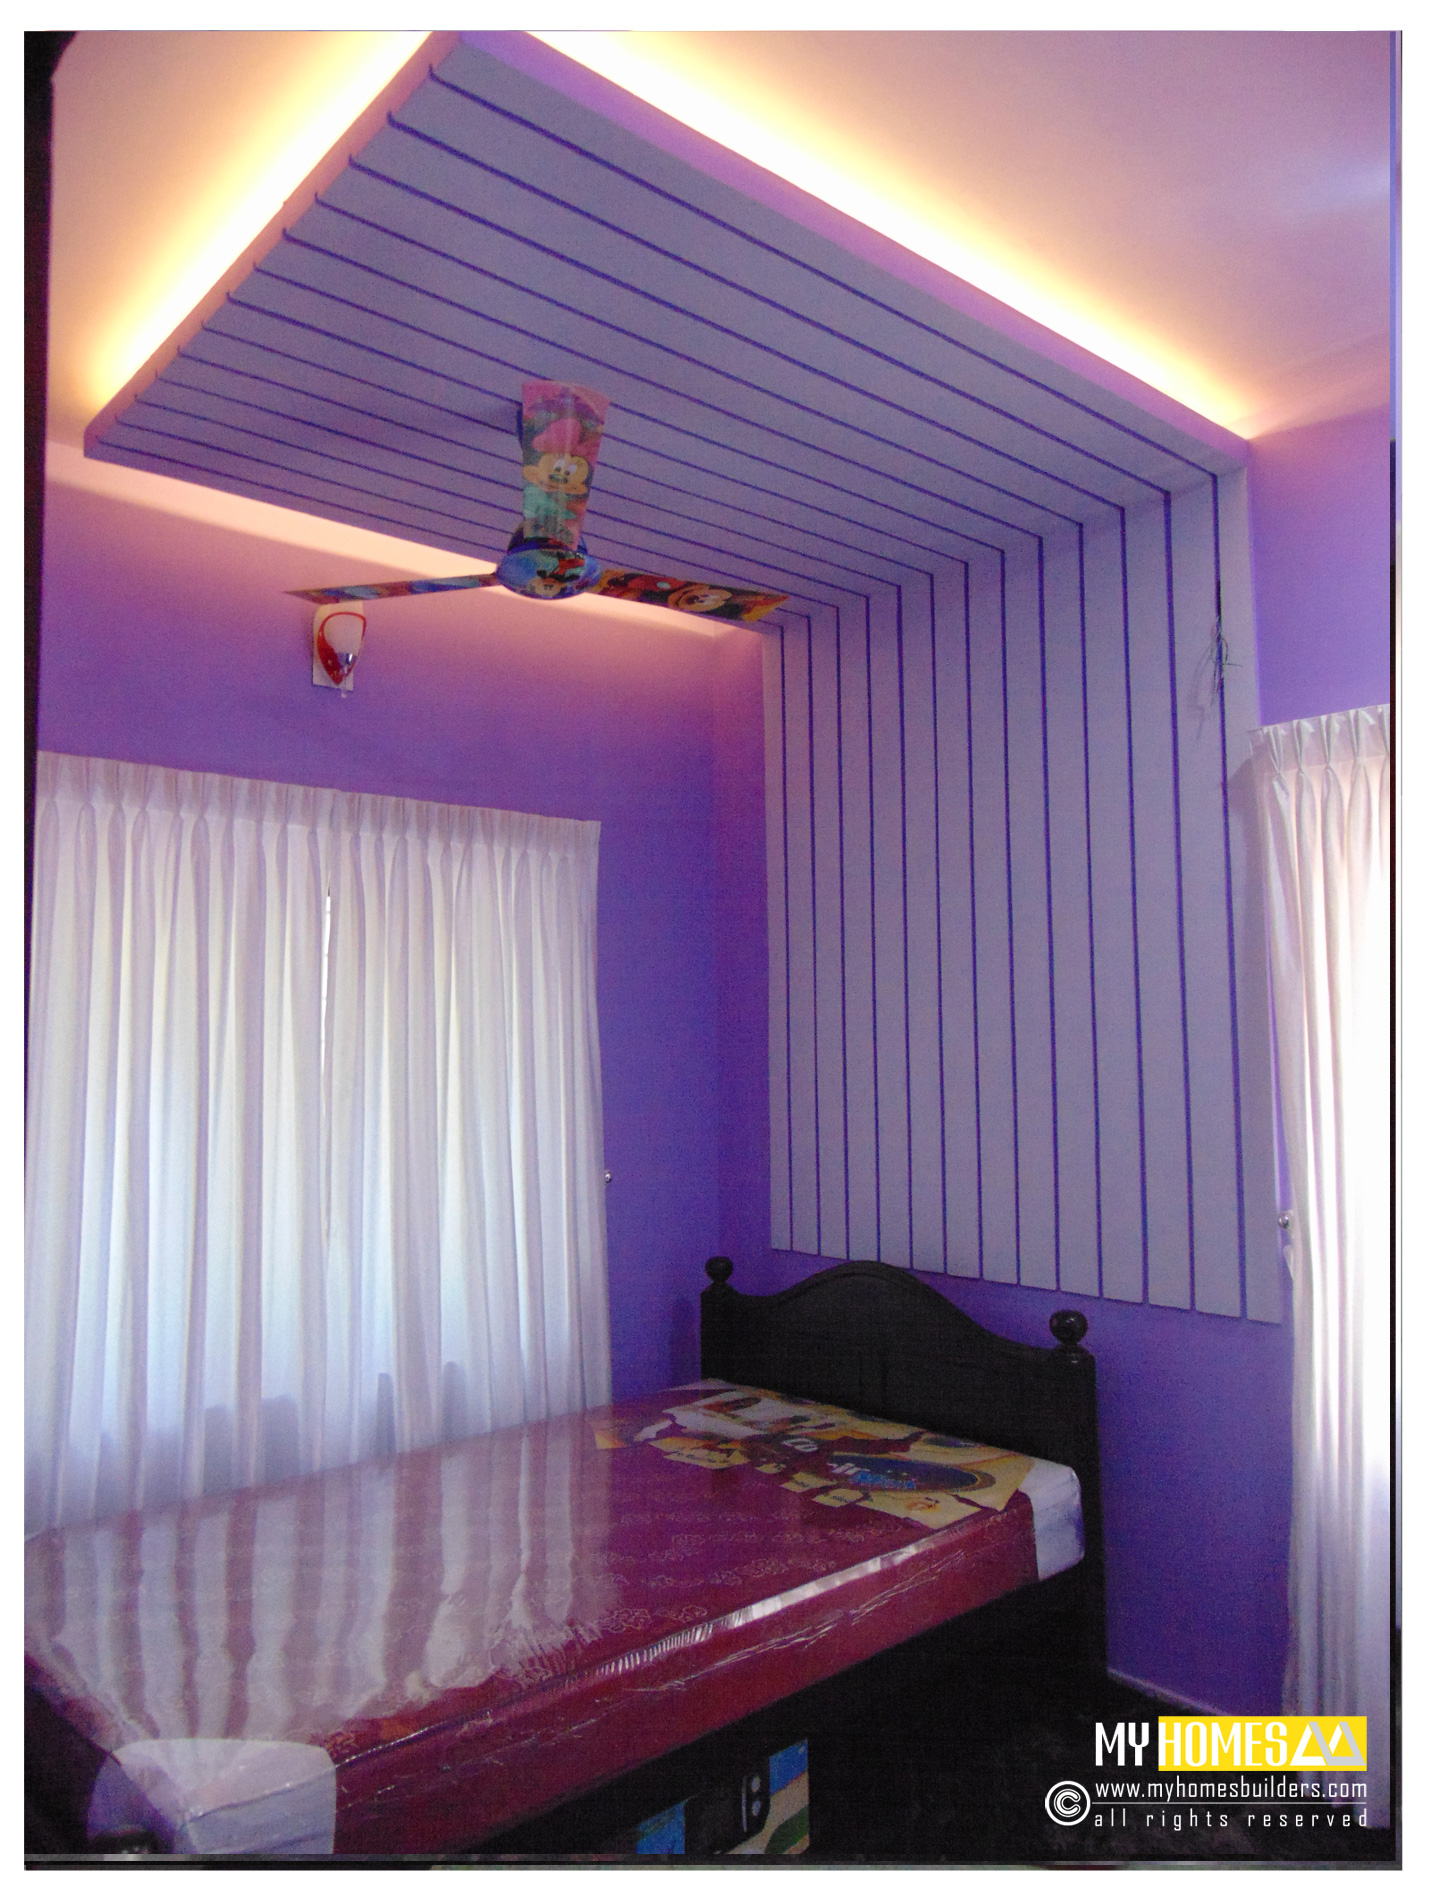 Simple style interior ideal kids bedroom designs in kerala for Interior design for kid bedroom